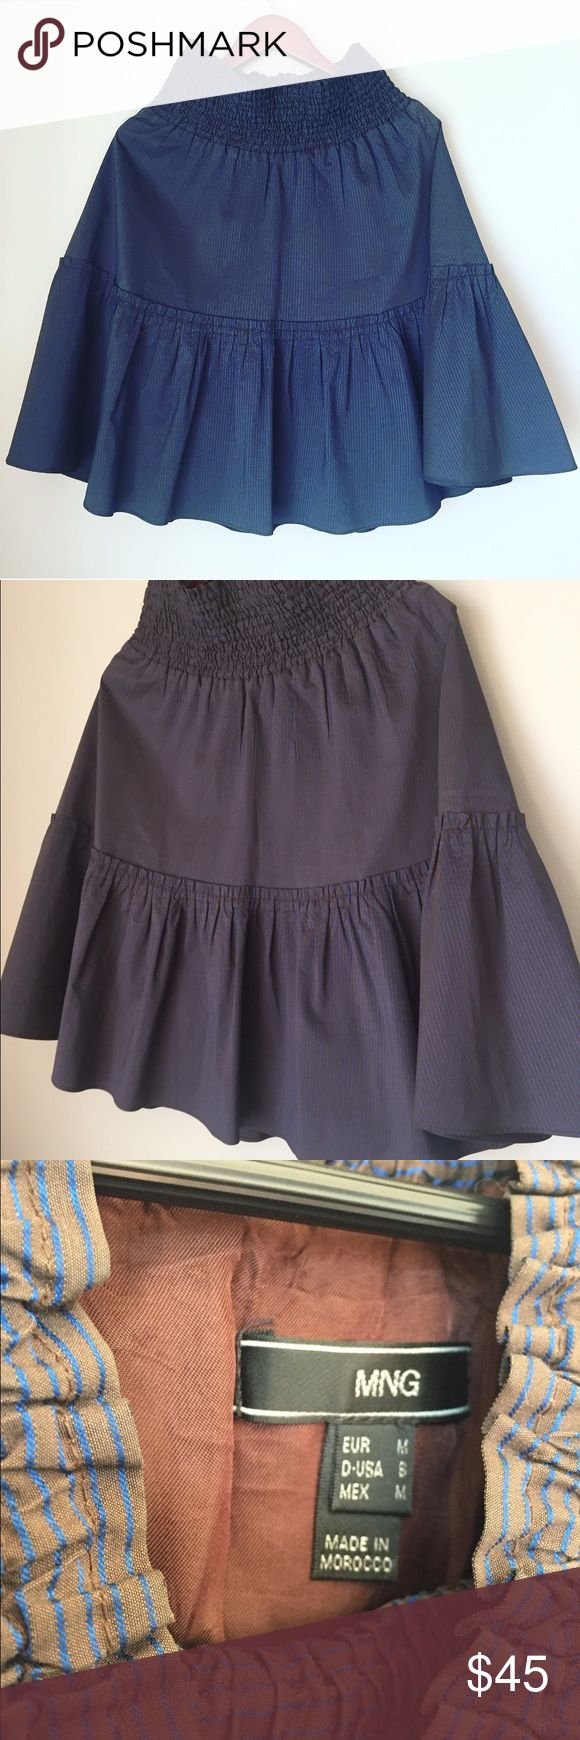 MANGO purple circle ruffle skirt Like new condition. Very cute and sexy. Amazing material. Stripes. Can fit S or M Mango Skirts Circle & Skater